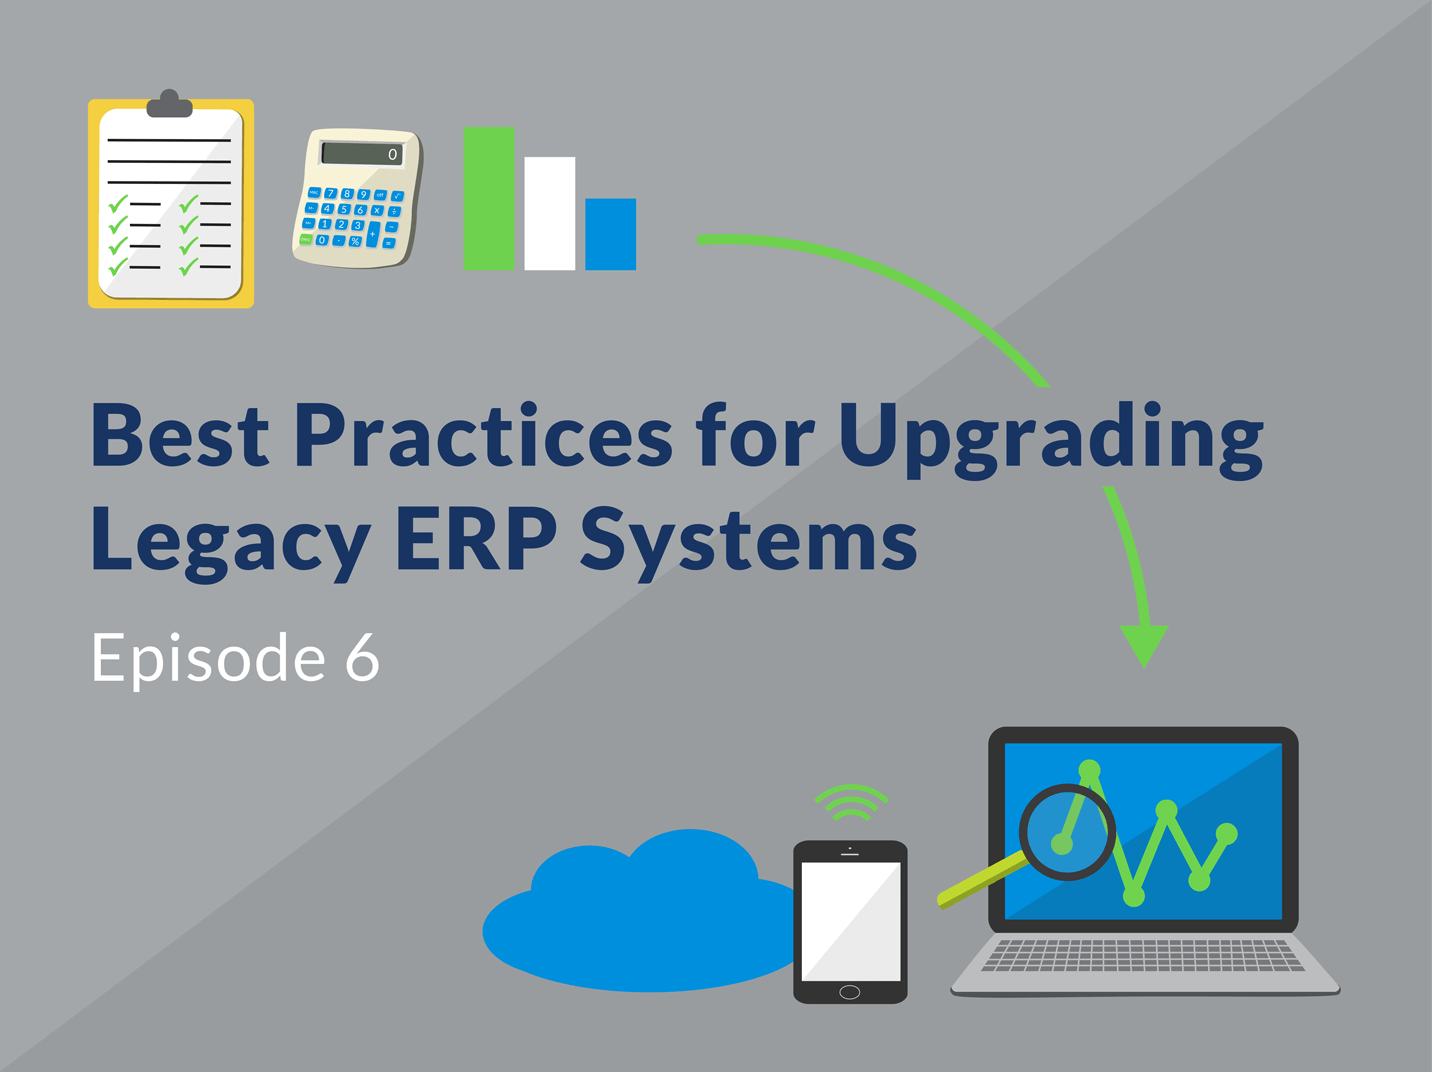 Best Practices for Upgrading Legacy ERP Systems